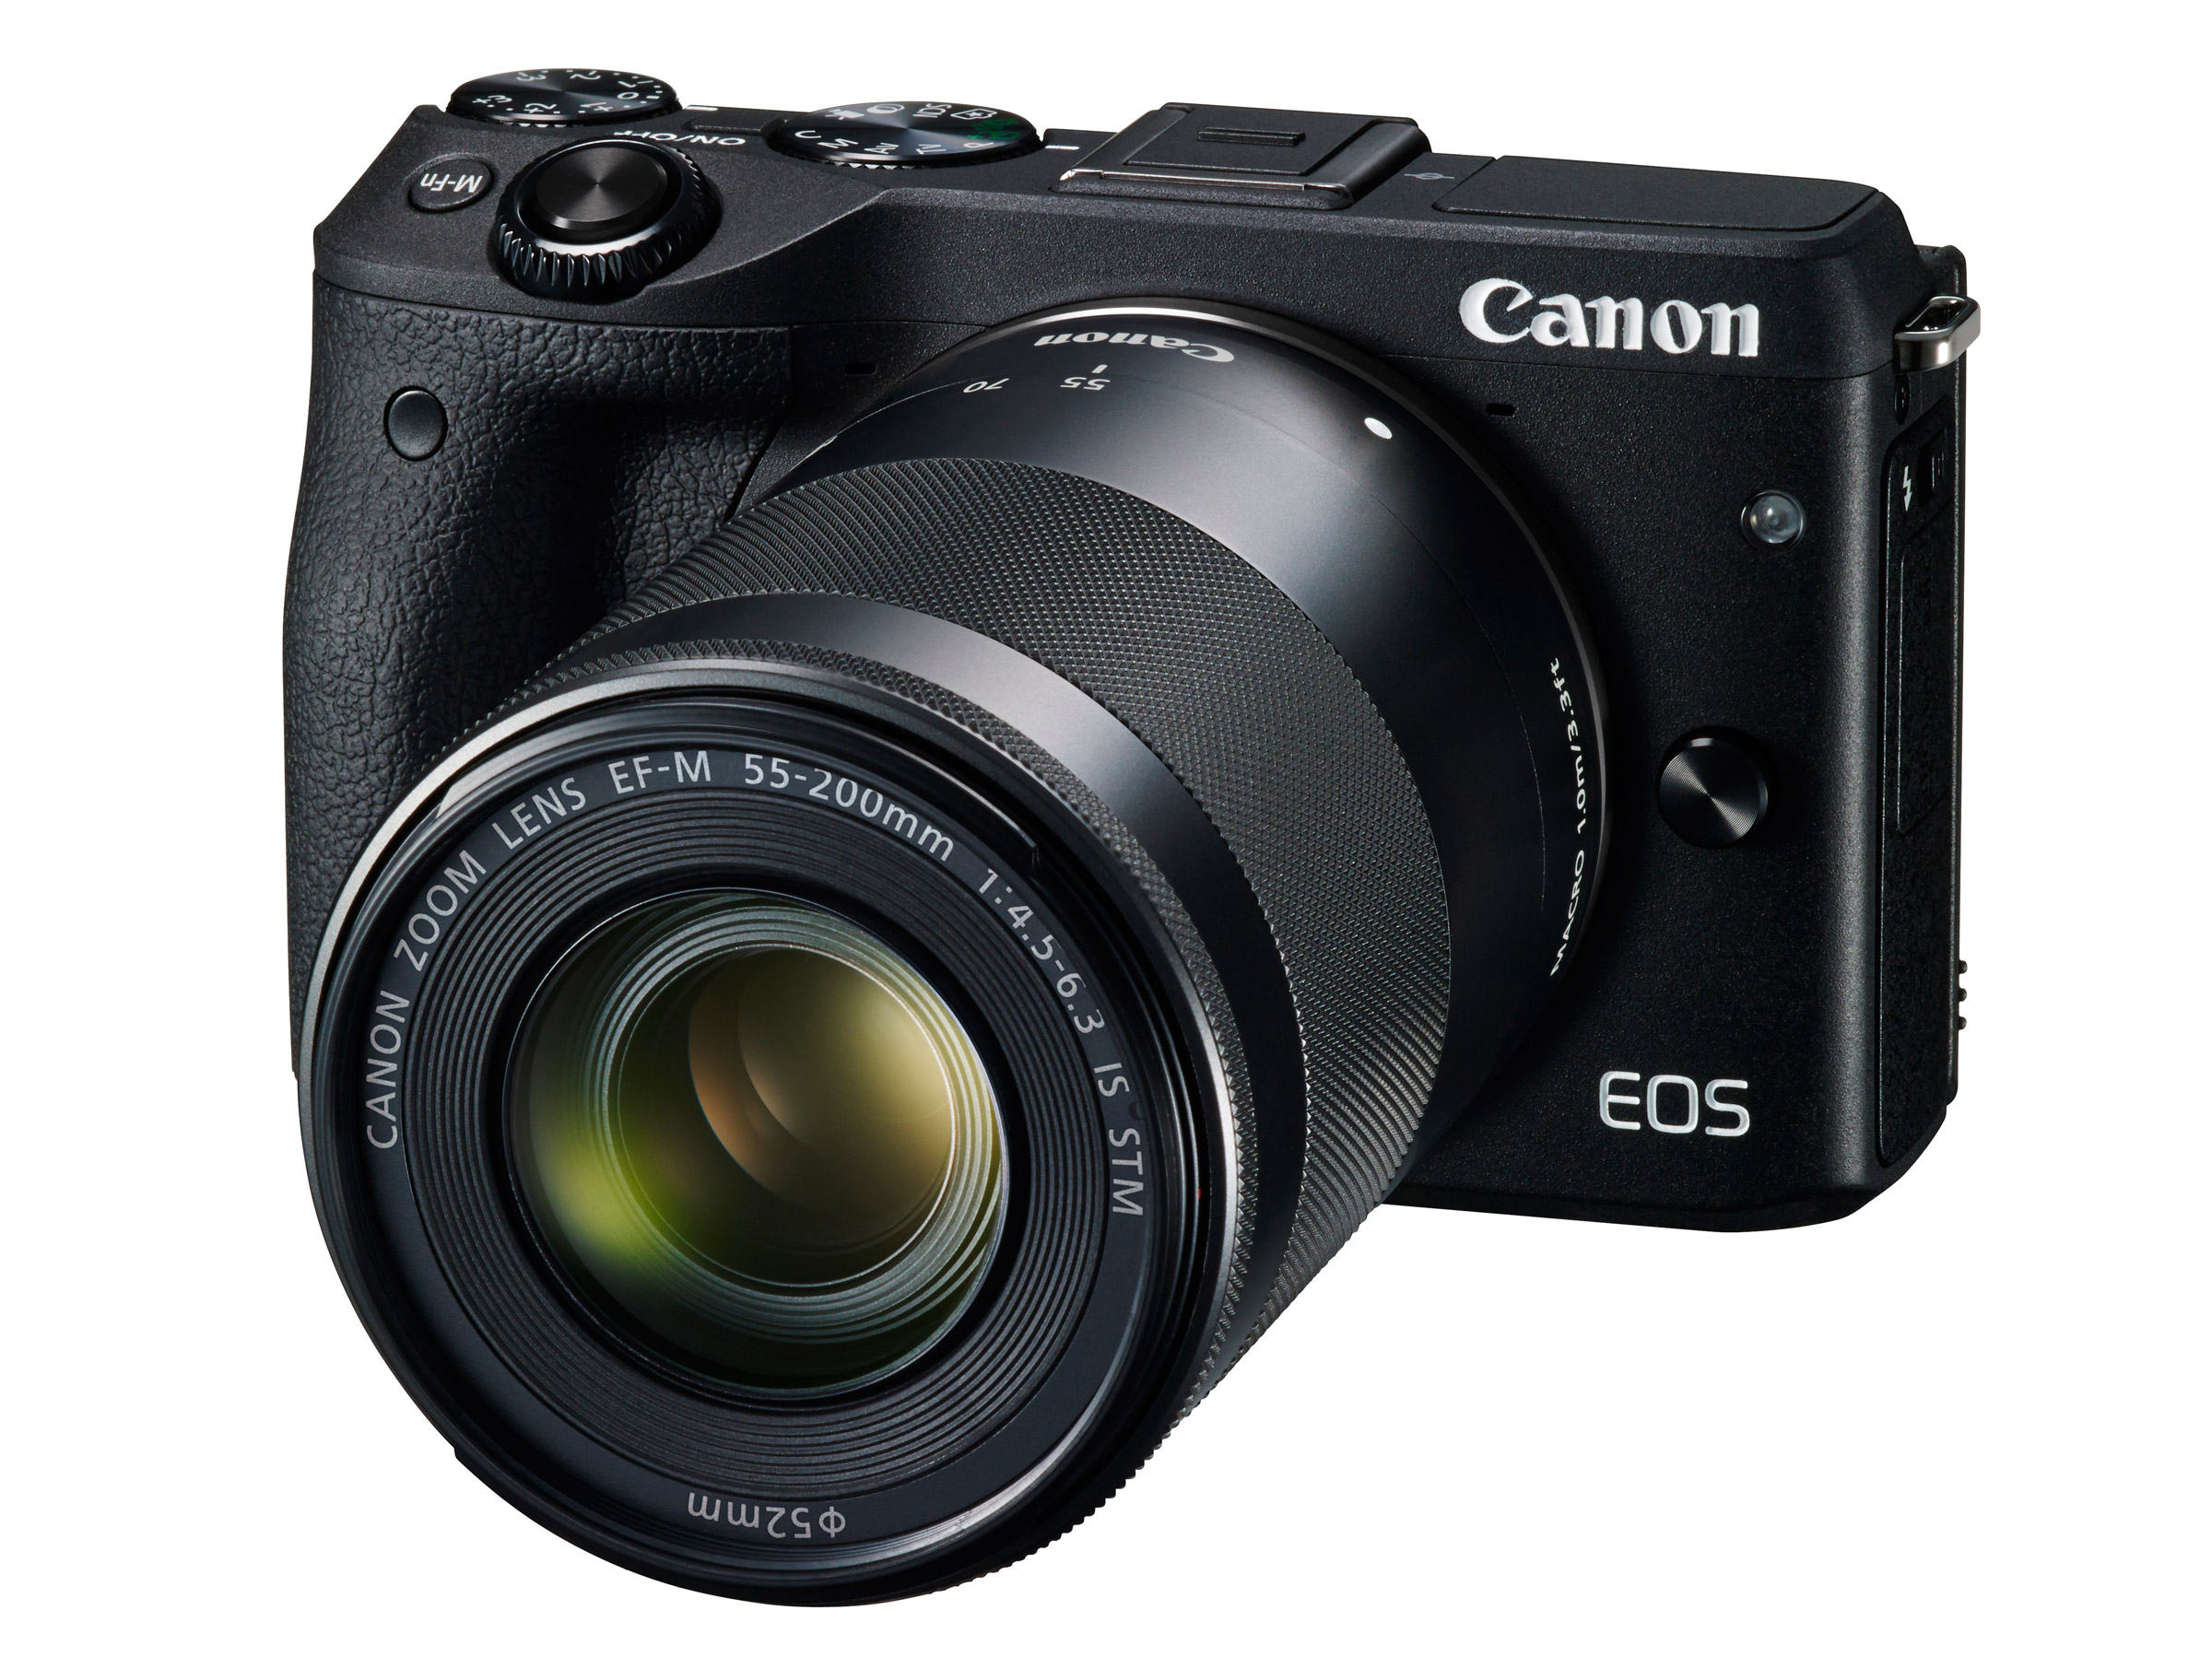 Canon Eos M3 Specifications And Opinions Juzaphoto 100d Kit 18 55 Is Stm 100 D